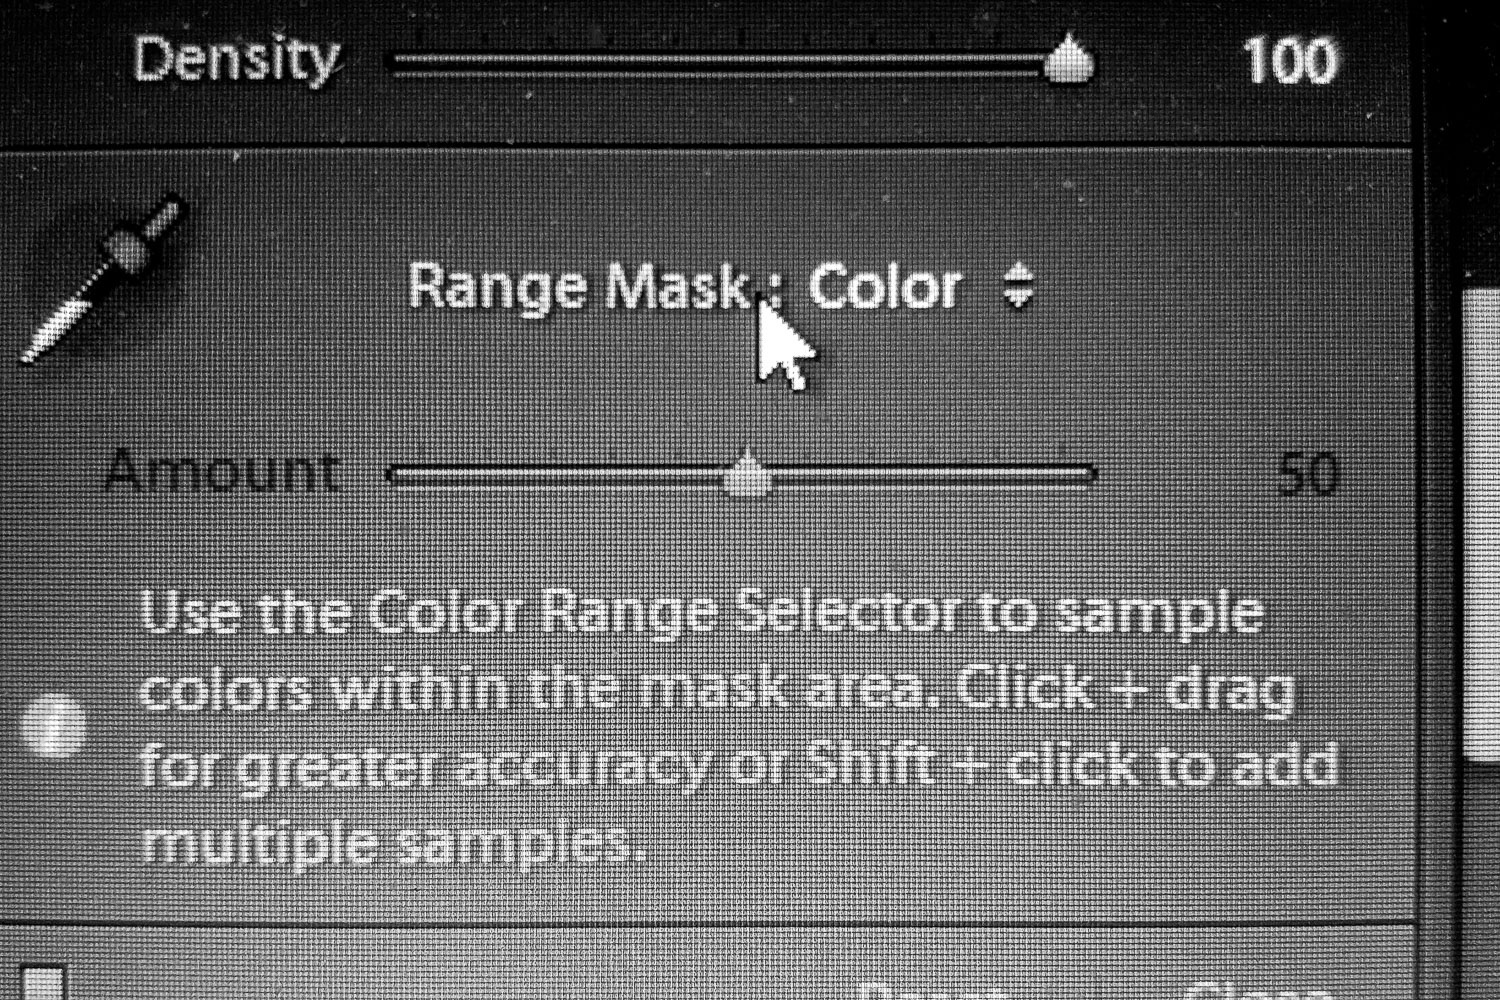 The Range Mask in Lightroom